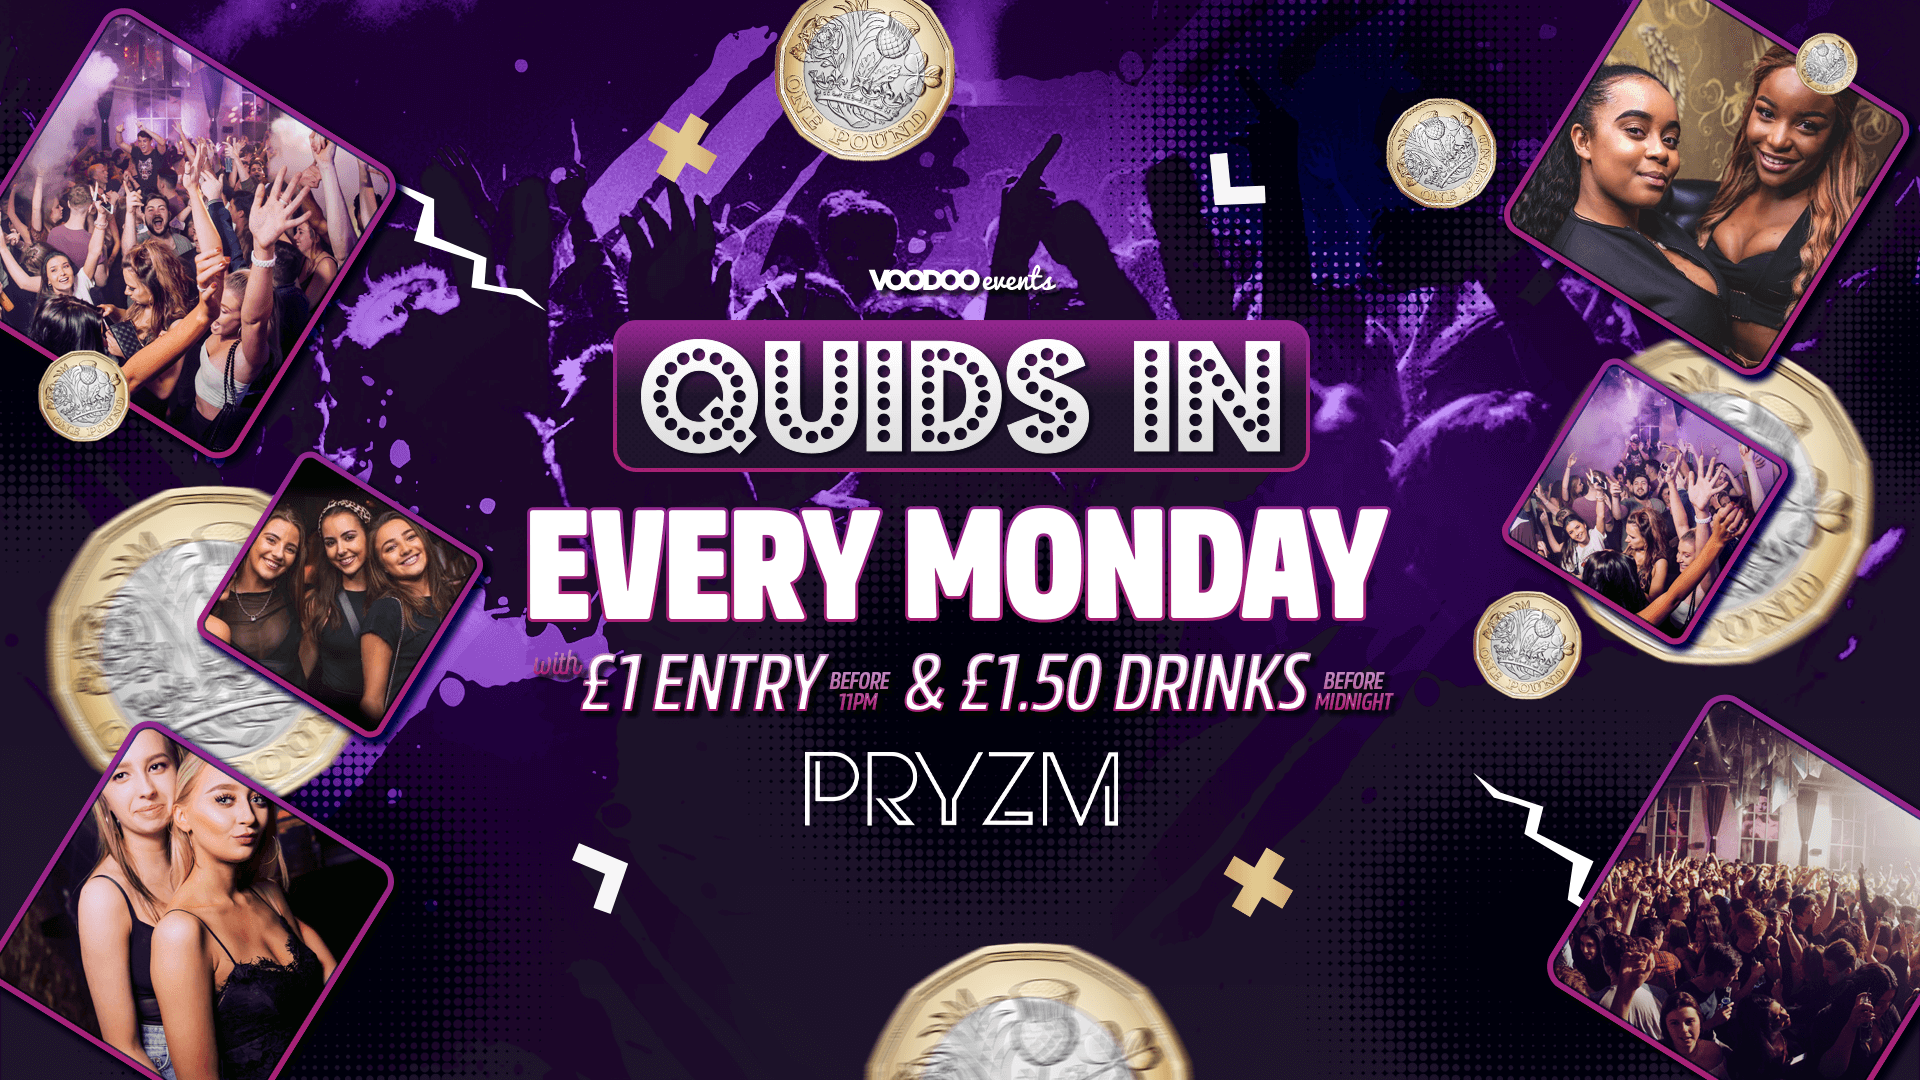 Quids In Mondays at PRYZM – Freshers 20th September